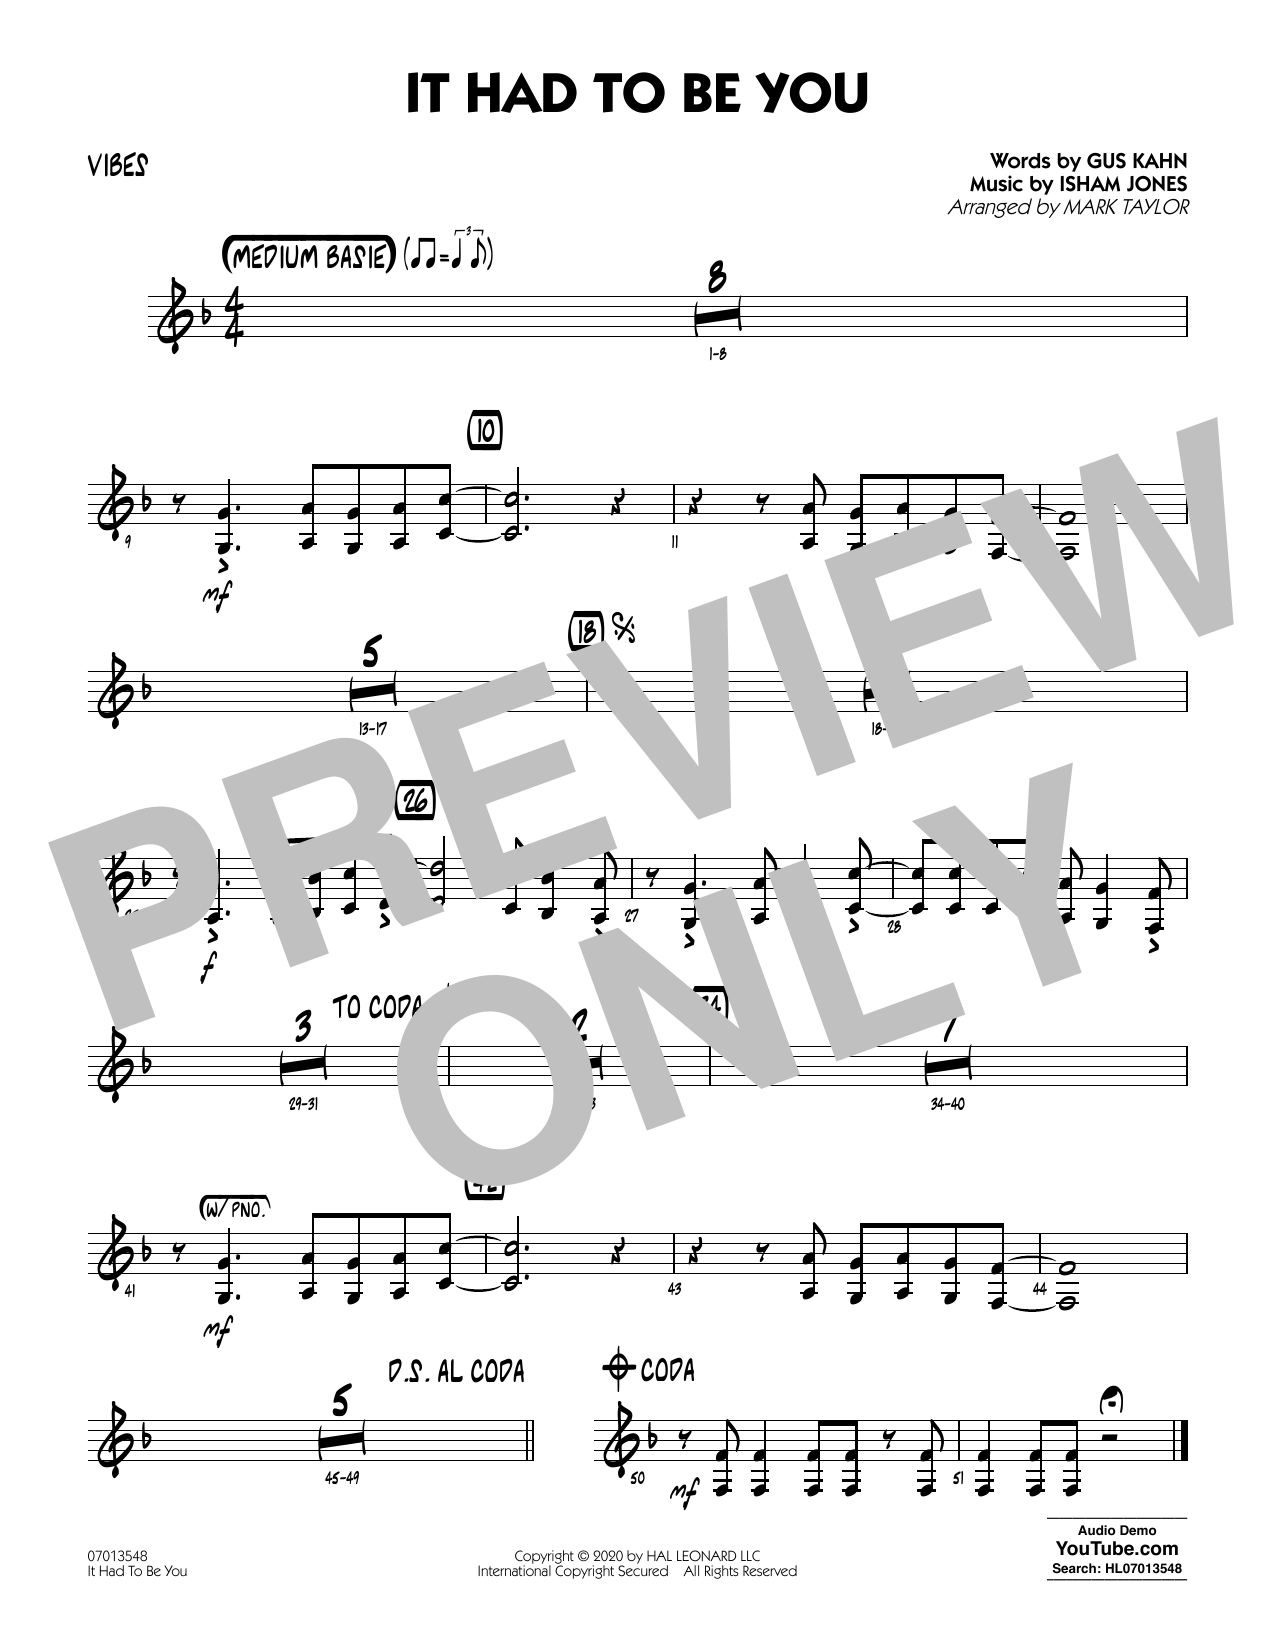 It Had to Be You (arr. Mark Taylor) - Vibes Sheet Music